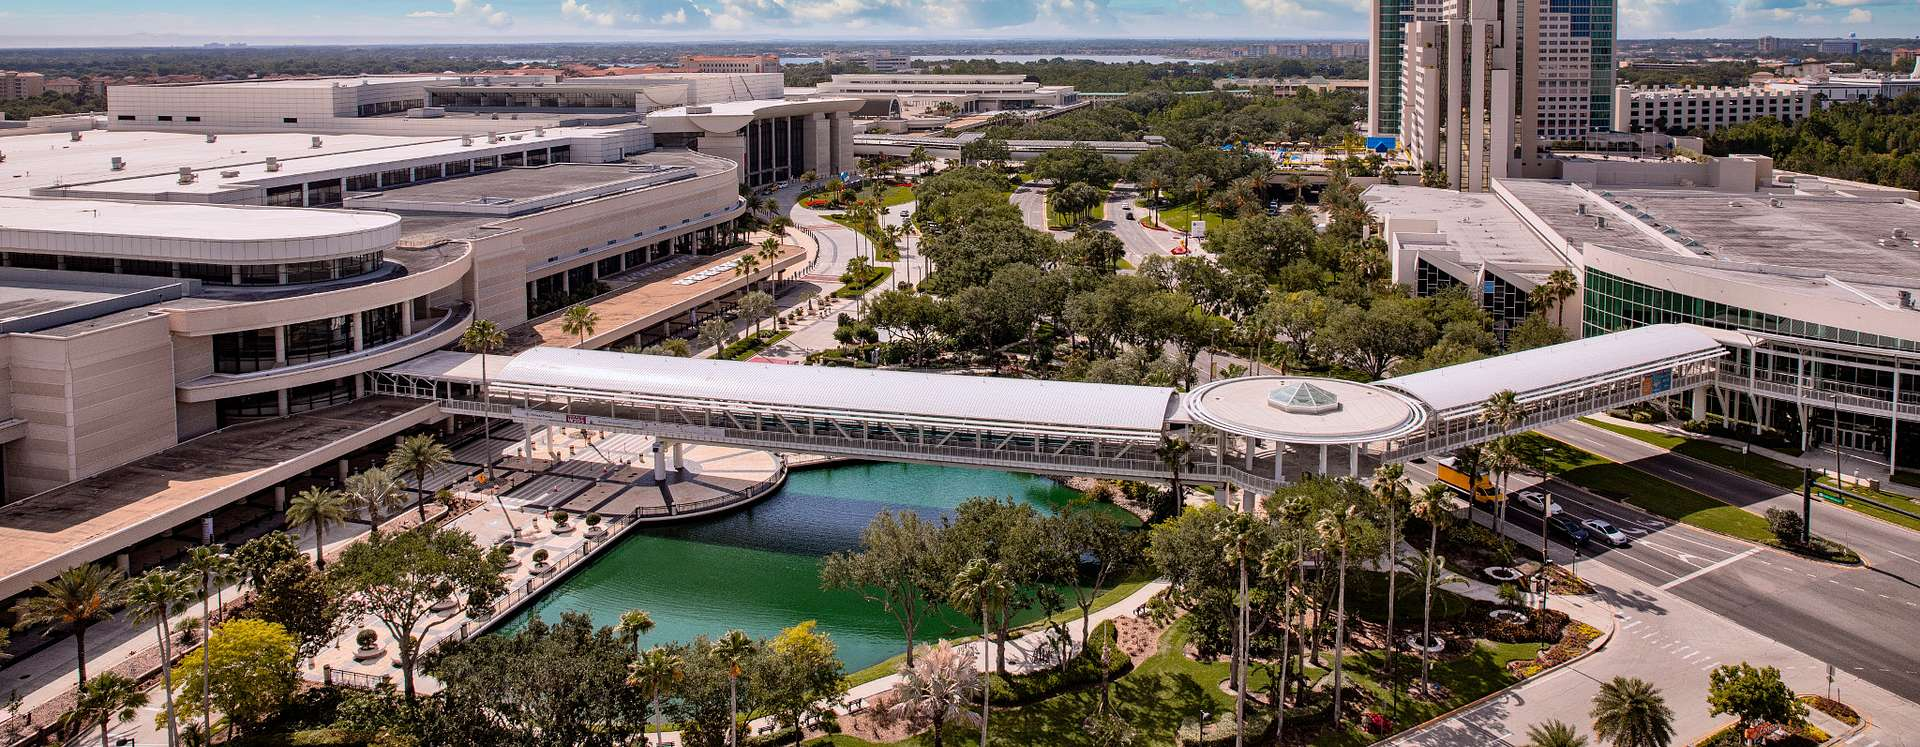 Orange County Convention Center aerial shot with connectivity bridge